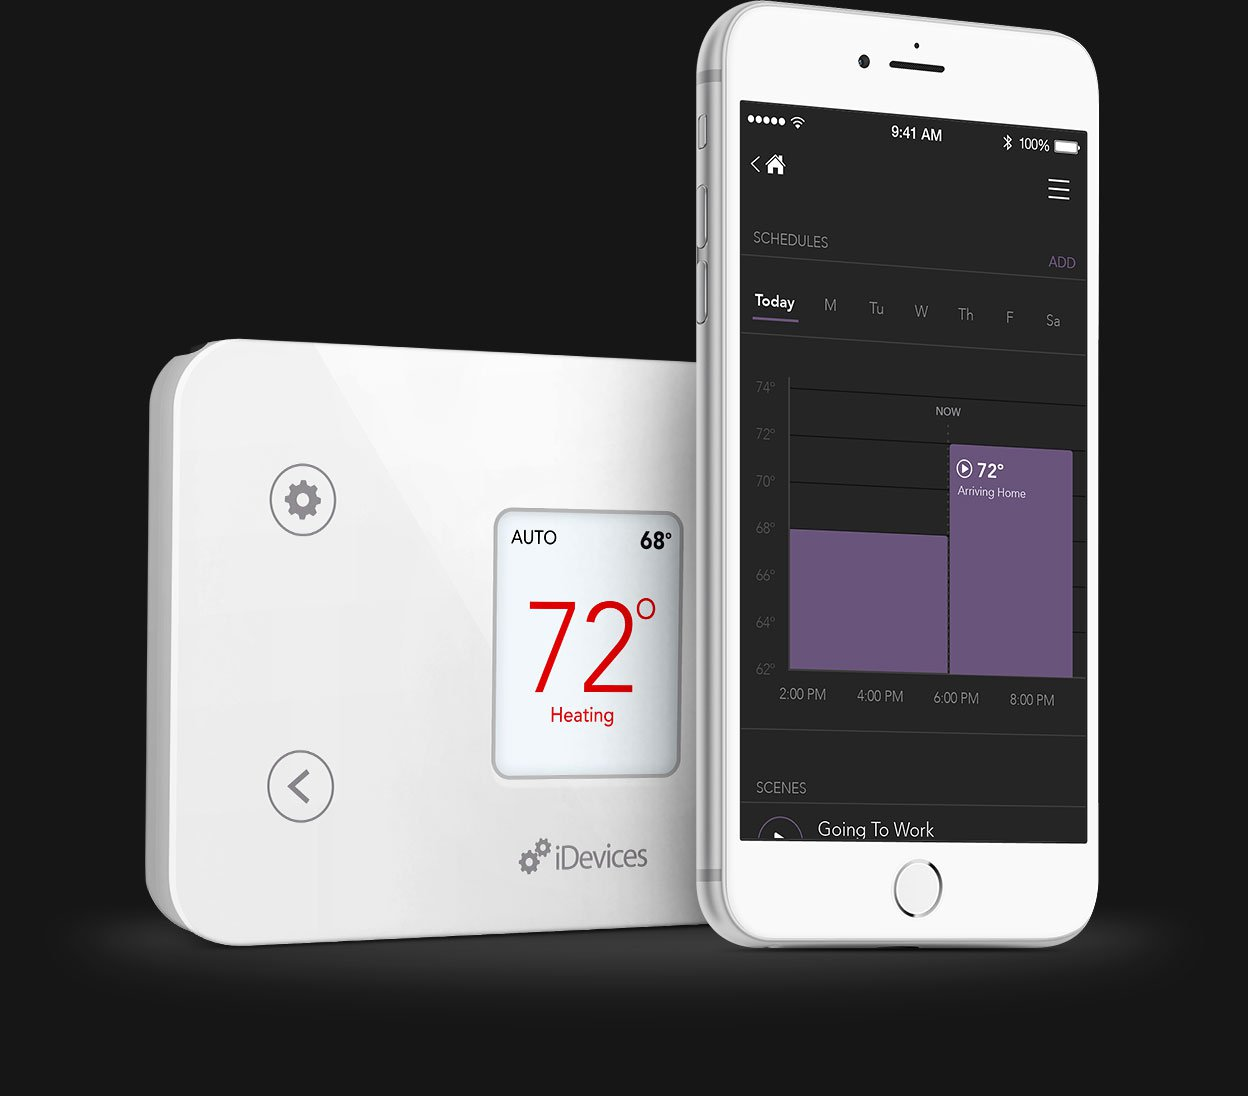 idevices thermostat homekit enabled thermostat